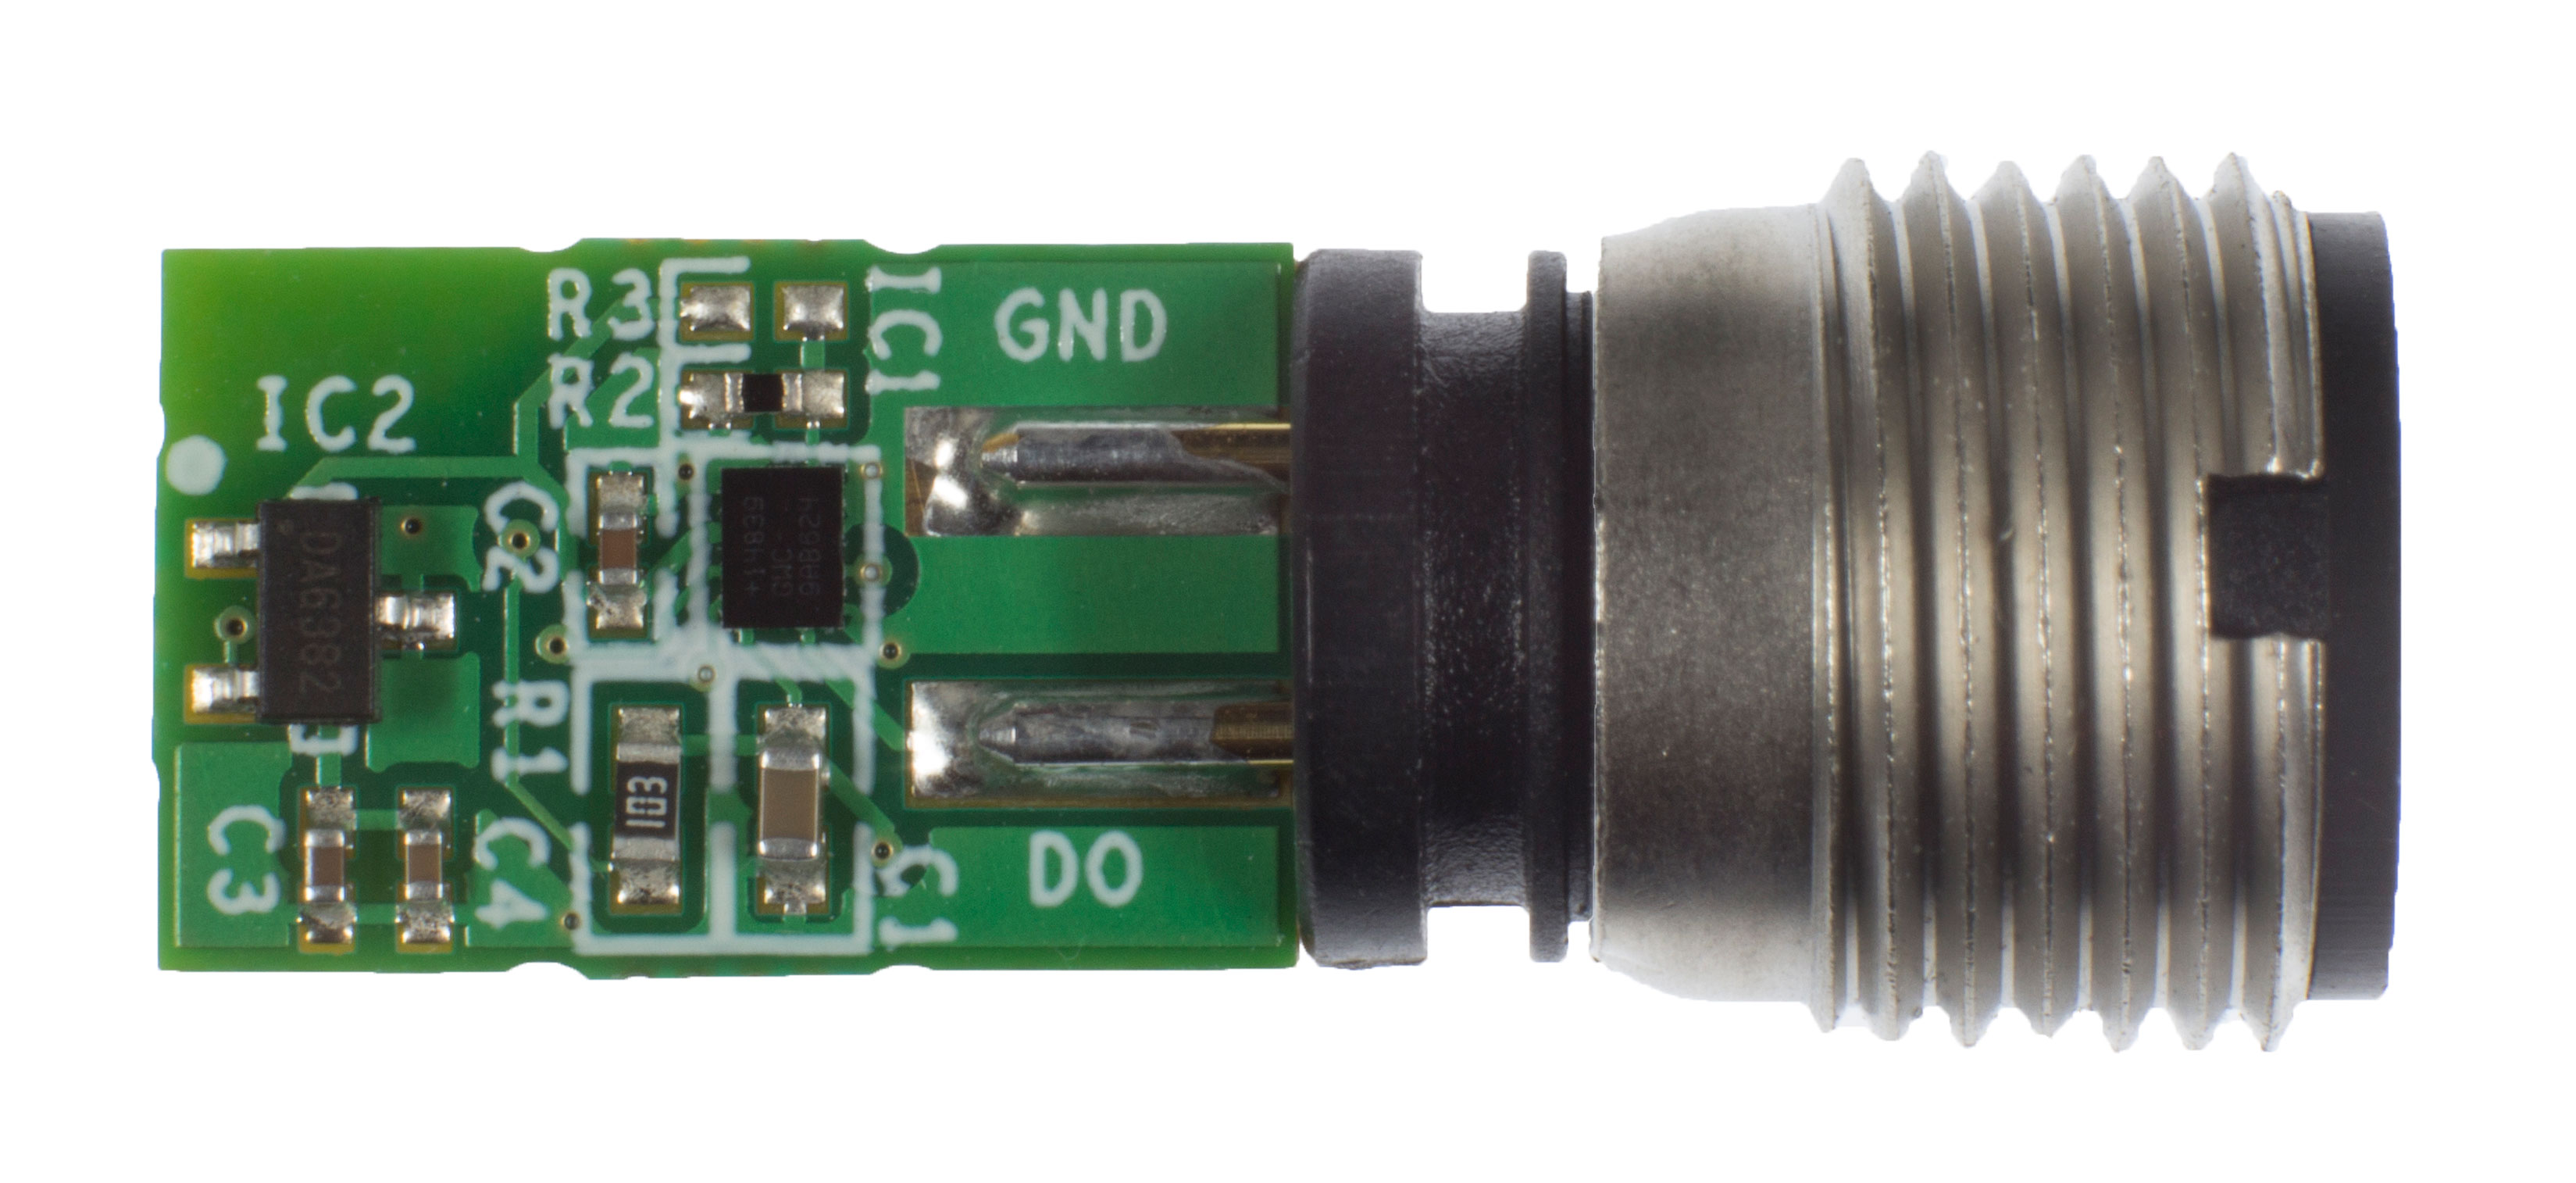 Io Link Reference Designs Maxim Proximity Infrared Detector Electronic Circuit Share The Knownledge This Ultra Small 15mm X 10mm Magnetic Sensor Design Uses An Integrated Digital And Industrial Output